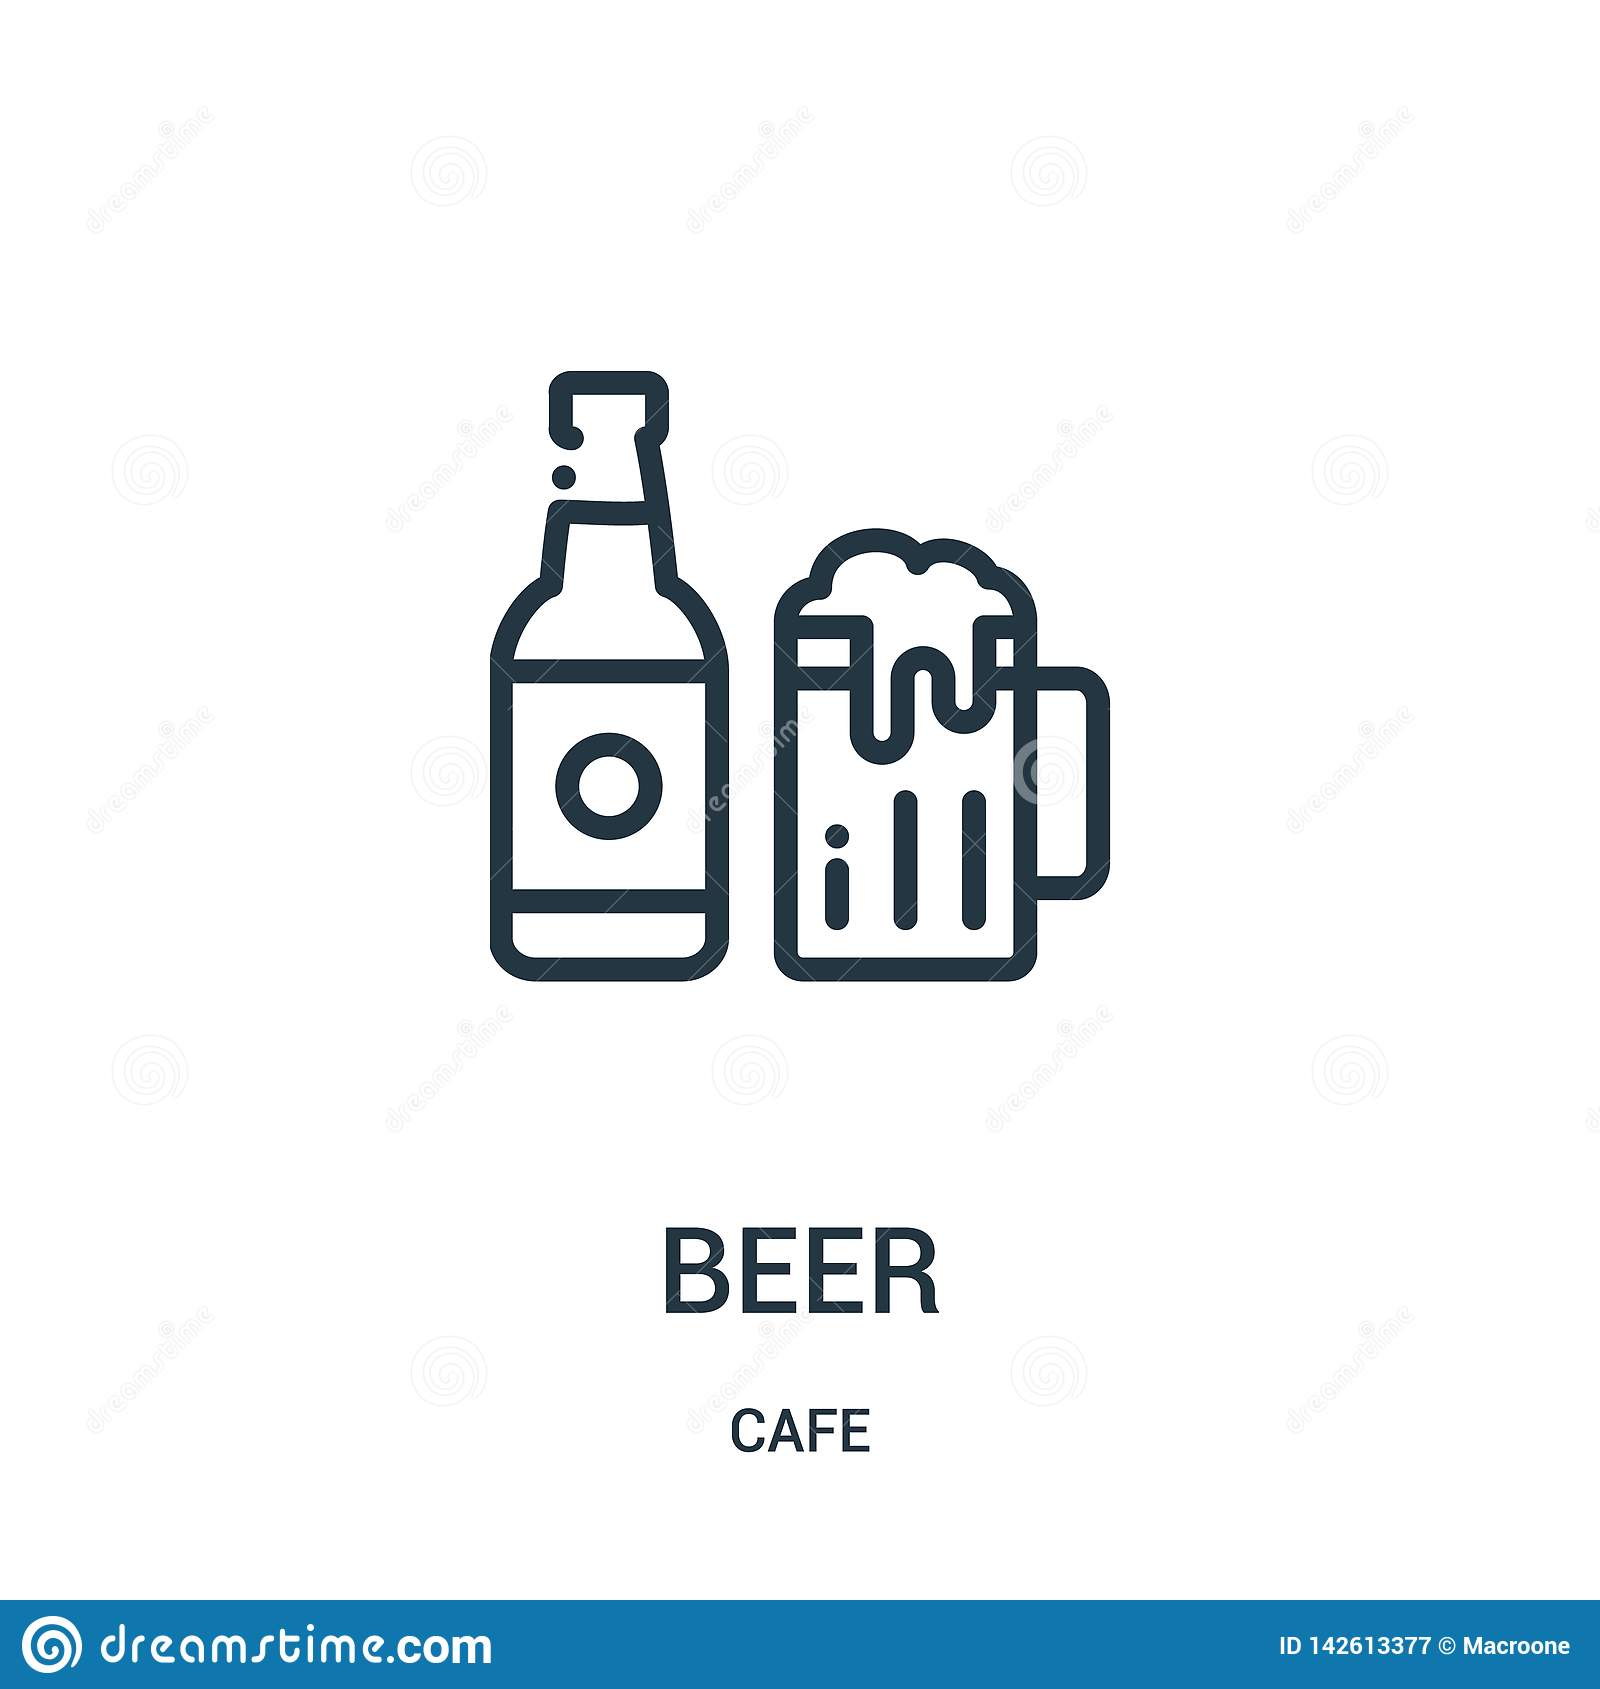 beer icon vector from cafe collection. Thin line beer outline icon vector illustration. Linear symbol